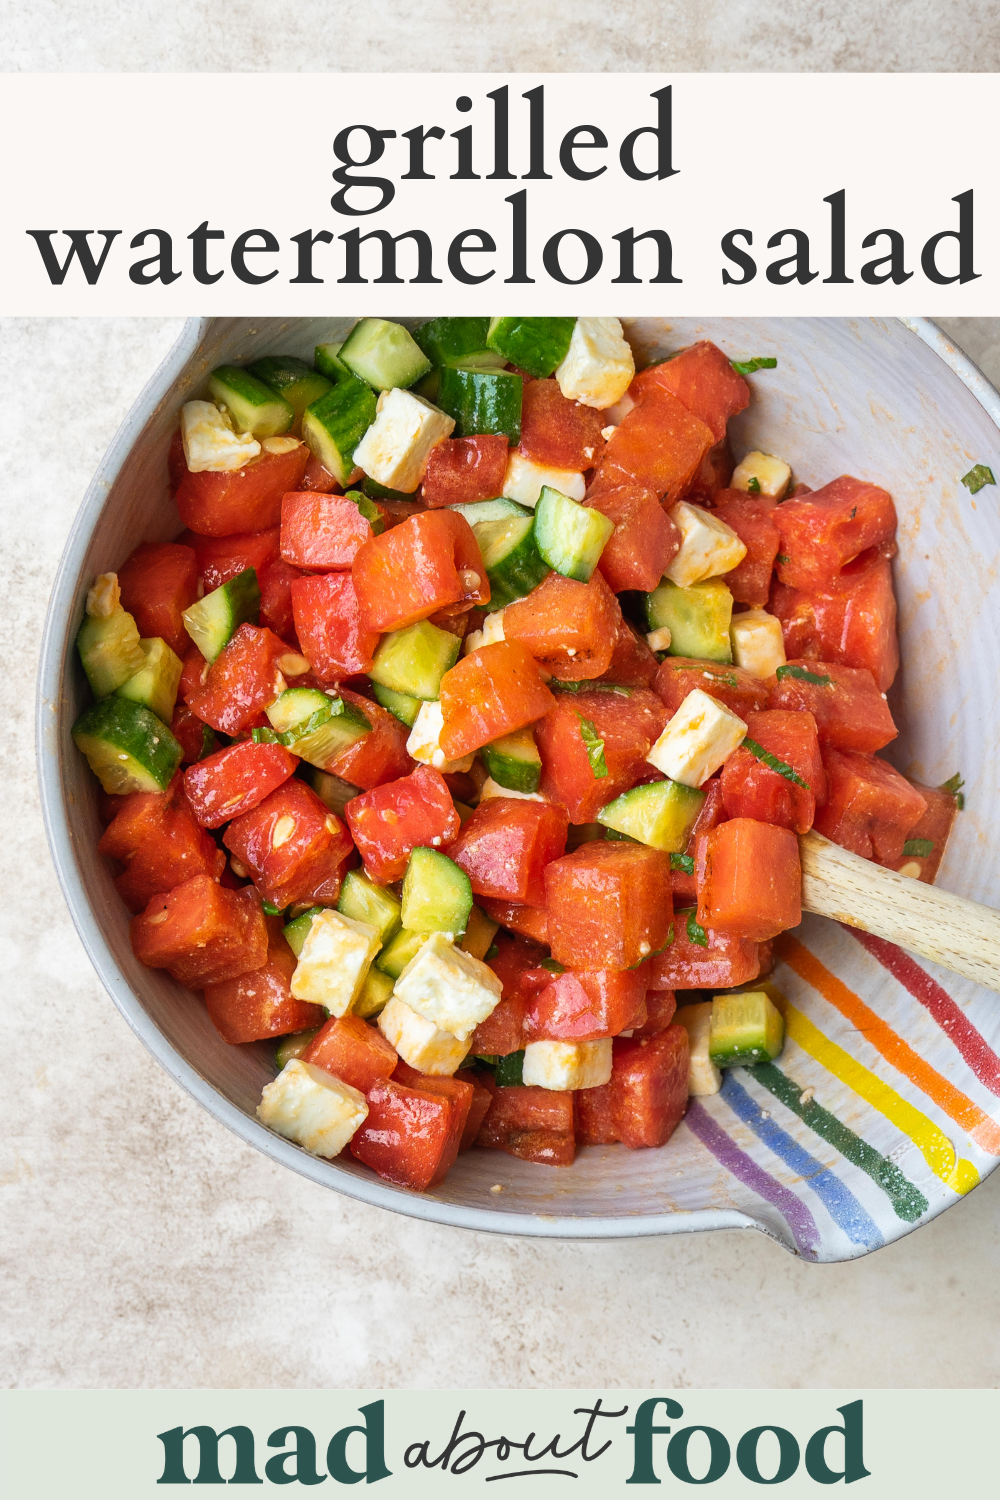 Image for Pinning Grilled Watermelon Salad recipe on Pinterest